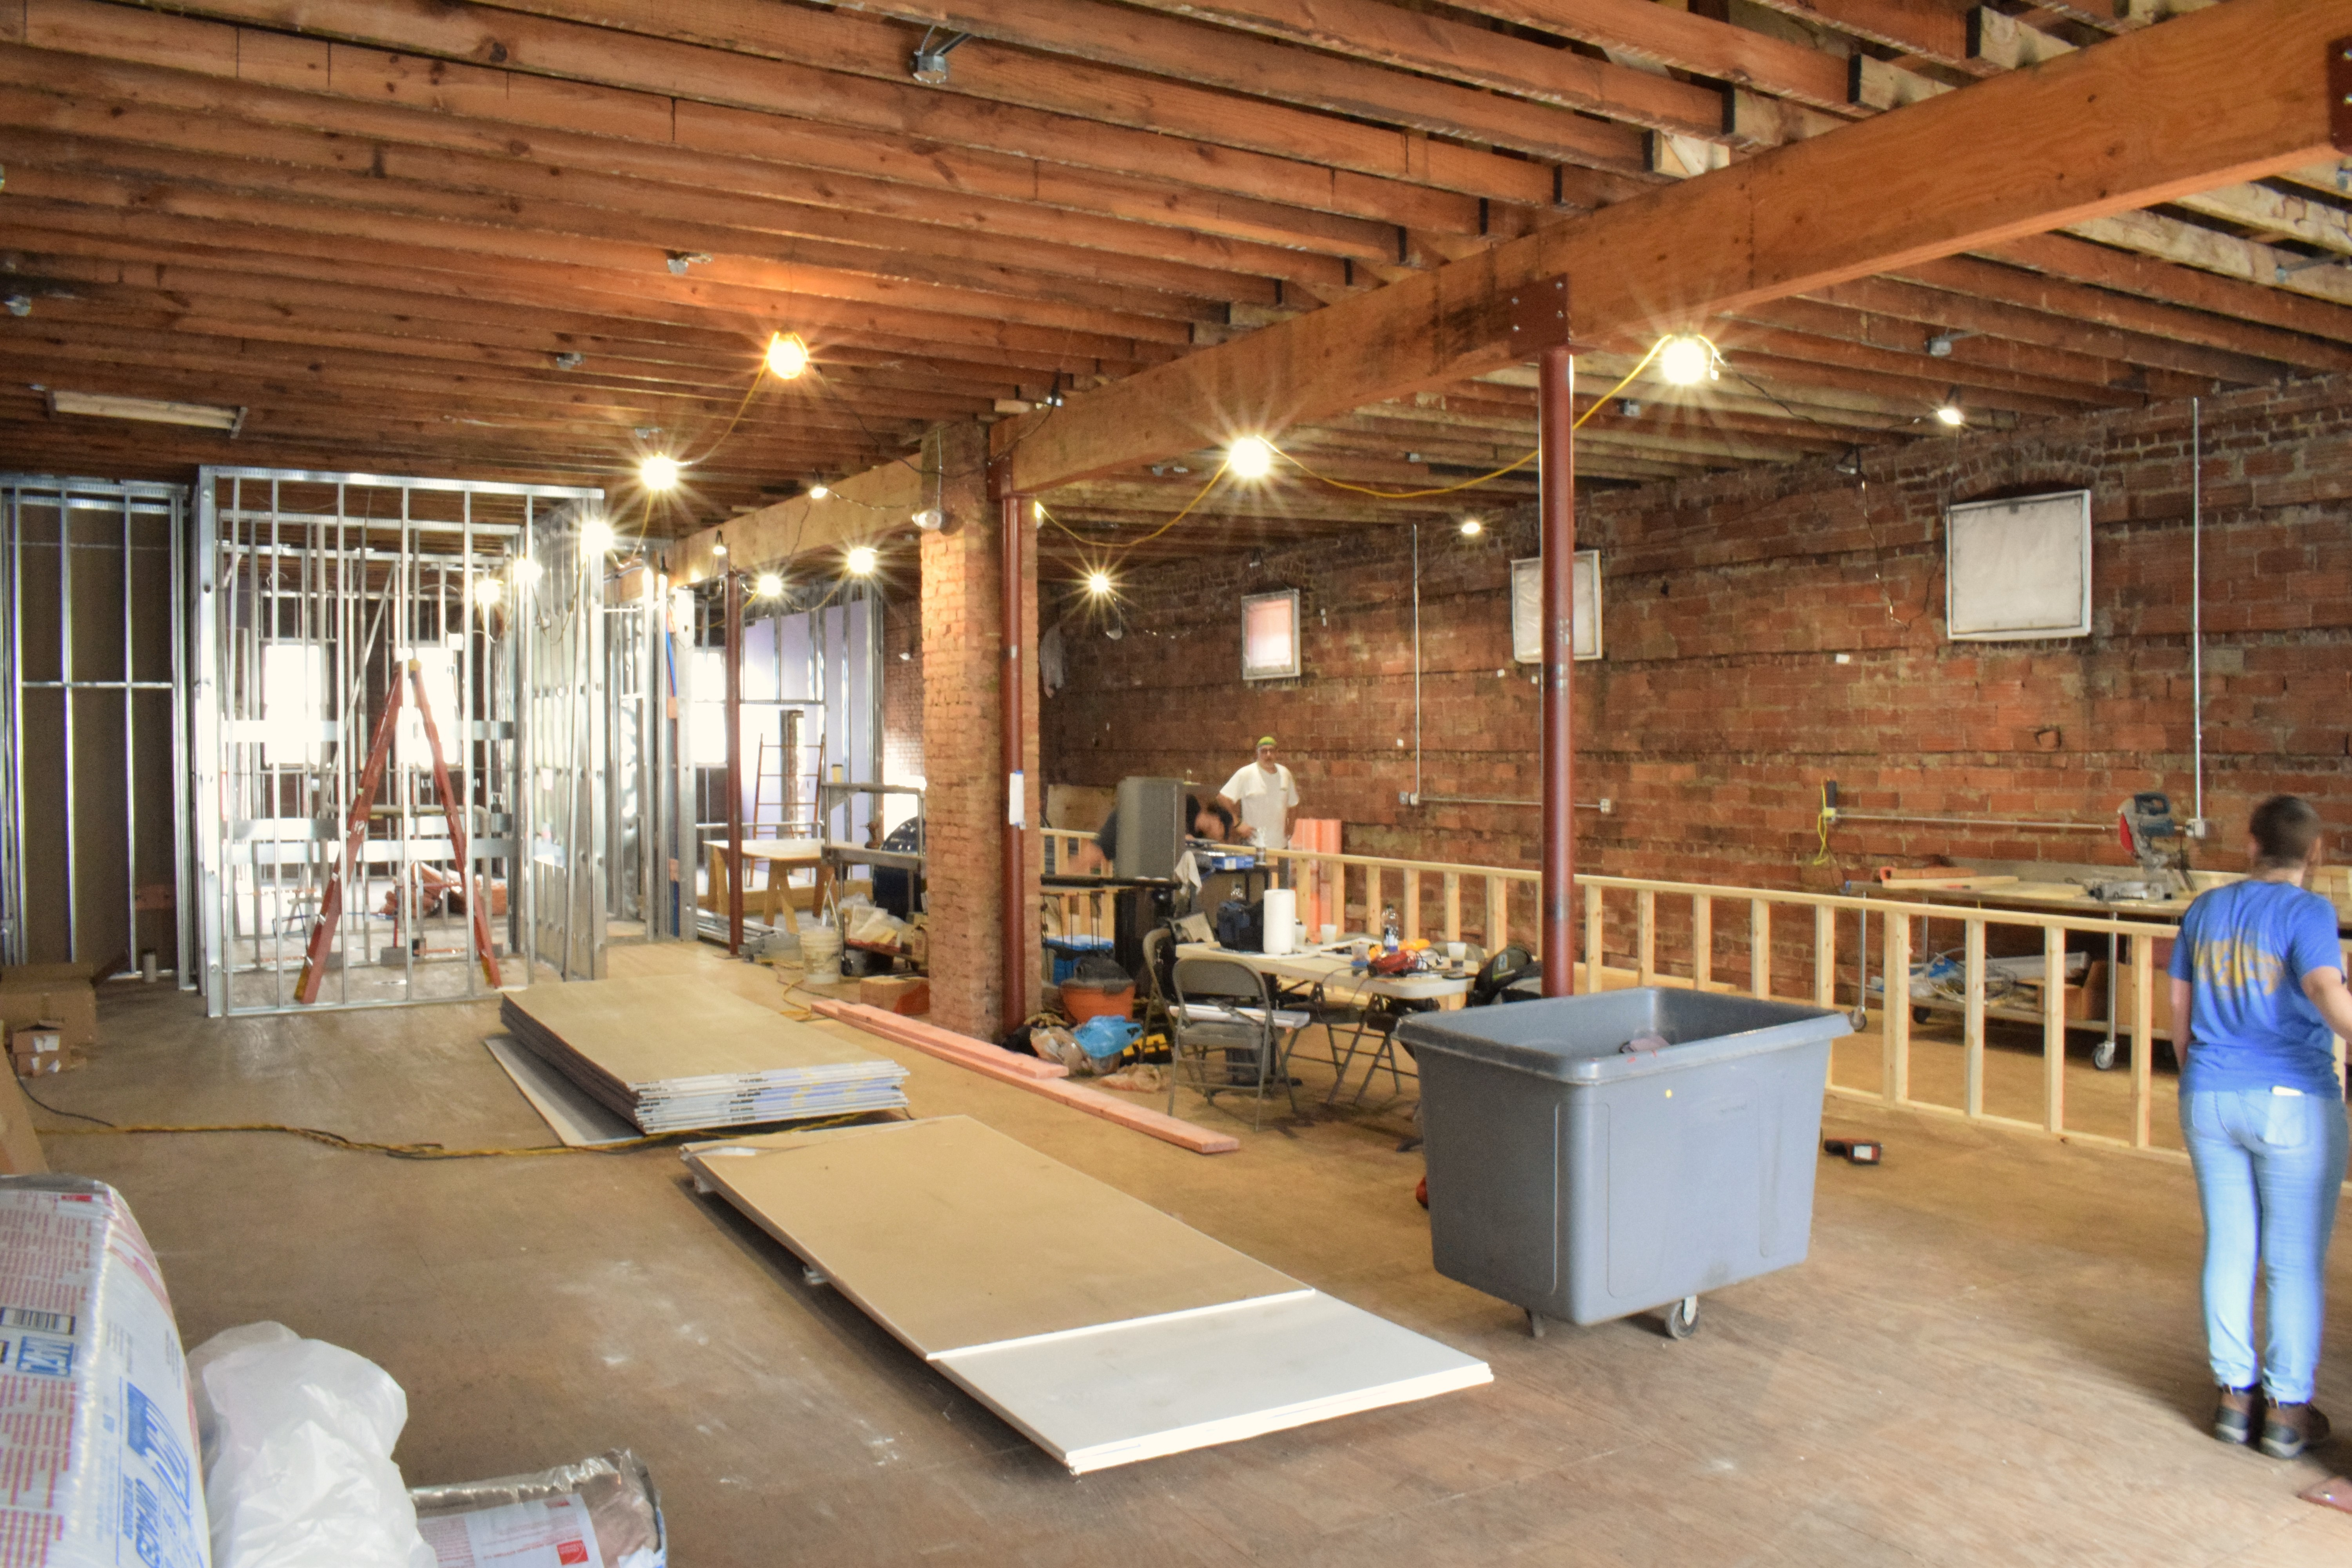 Meadville, PA-Based Voodoo Brewery to Open Taproom in Cleveland